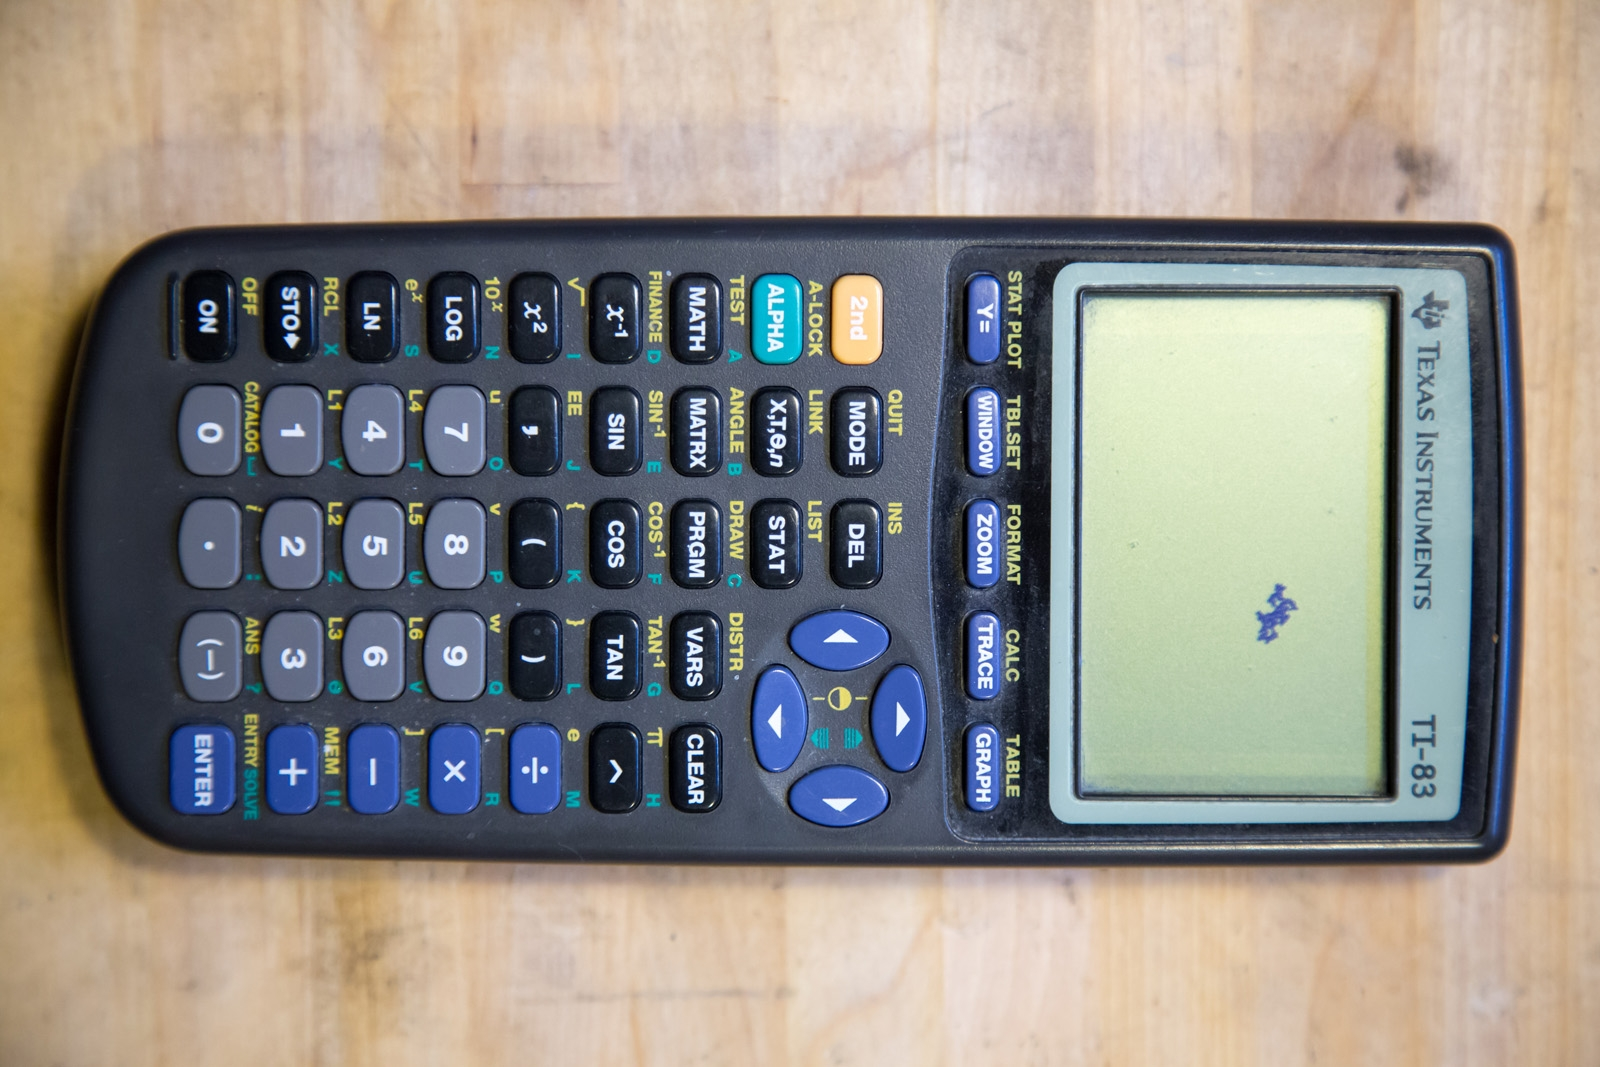 Plus manual pdf ti-83